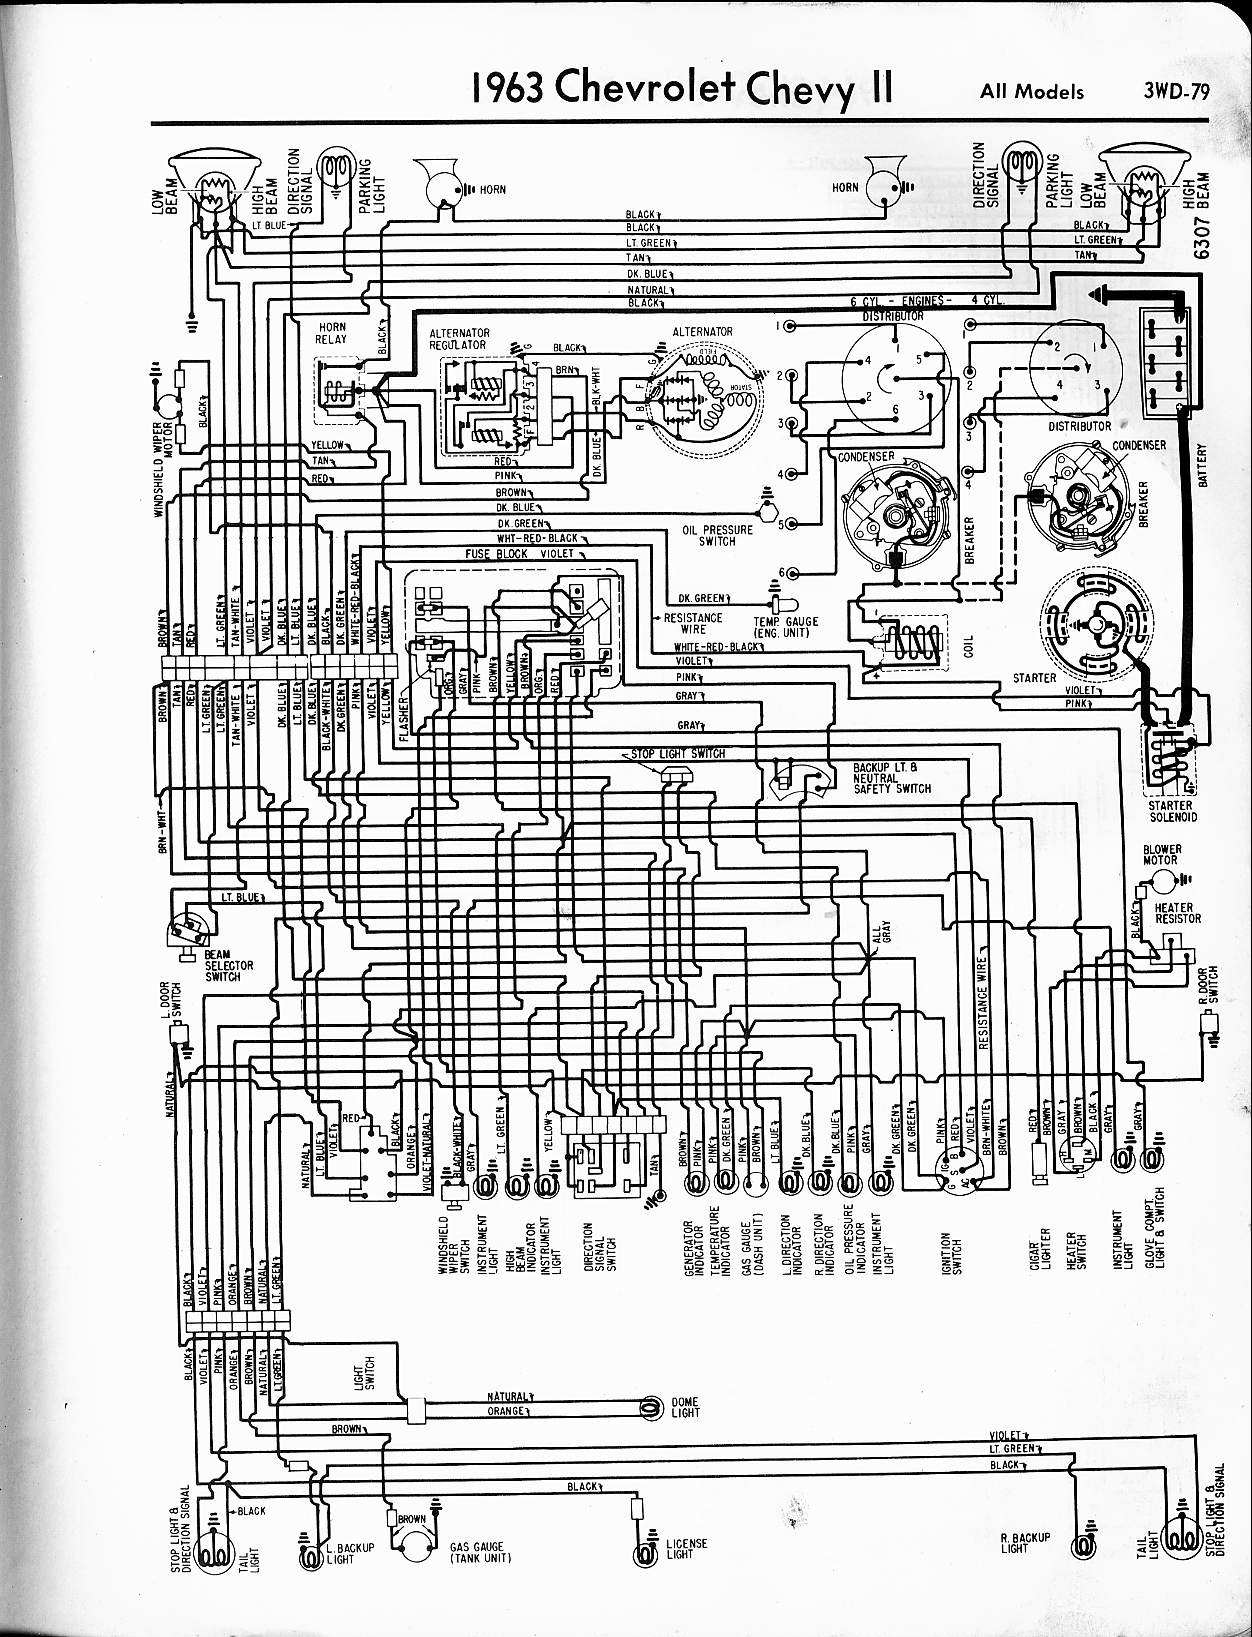 wiring diagrams for chevy trucks the wiring diagram 63 chevy truck wiring diagram nilza wiring diagram